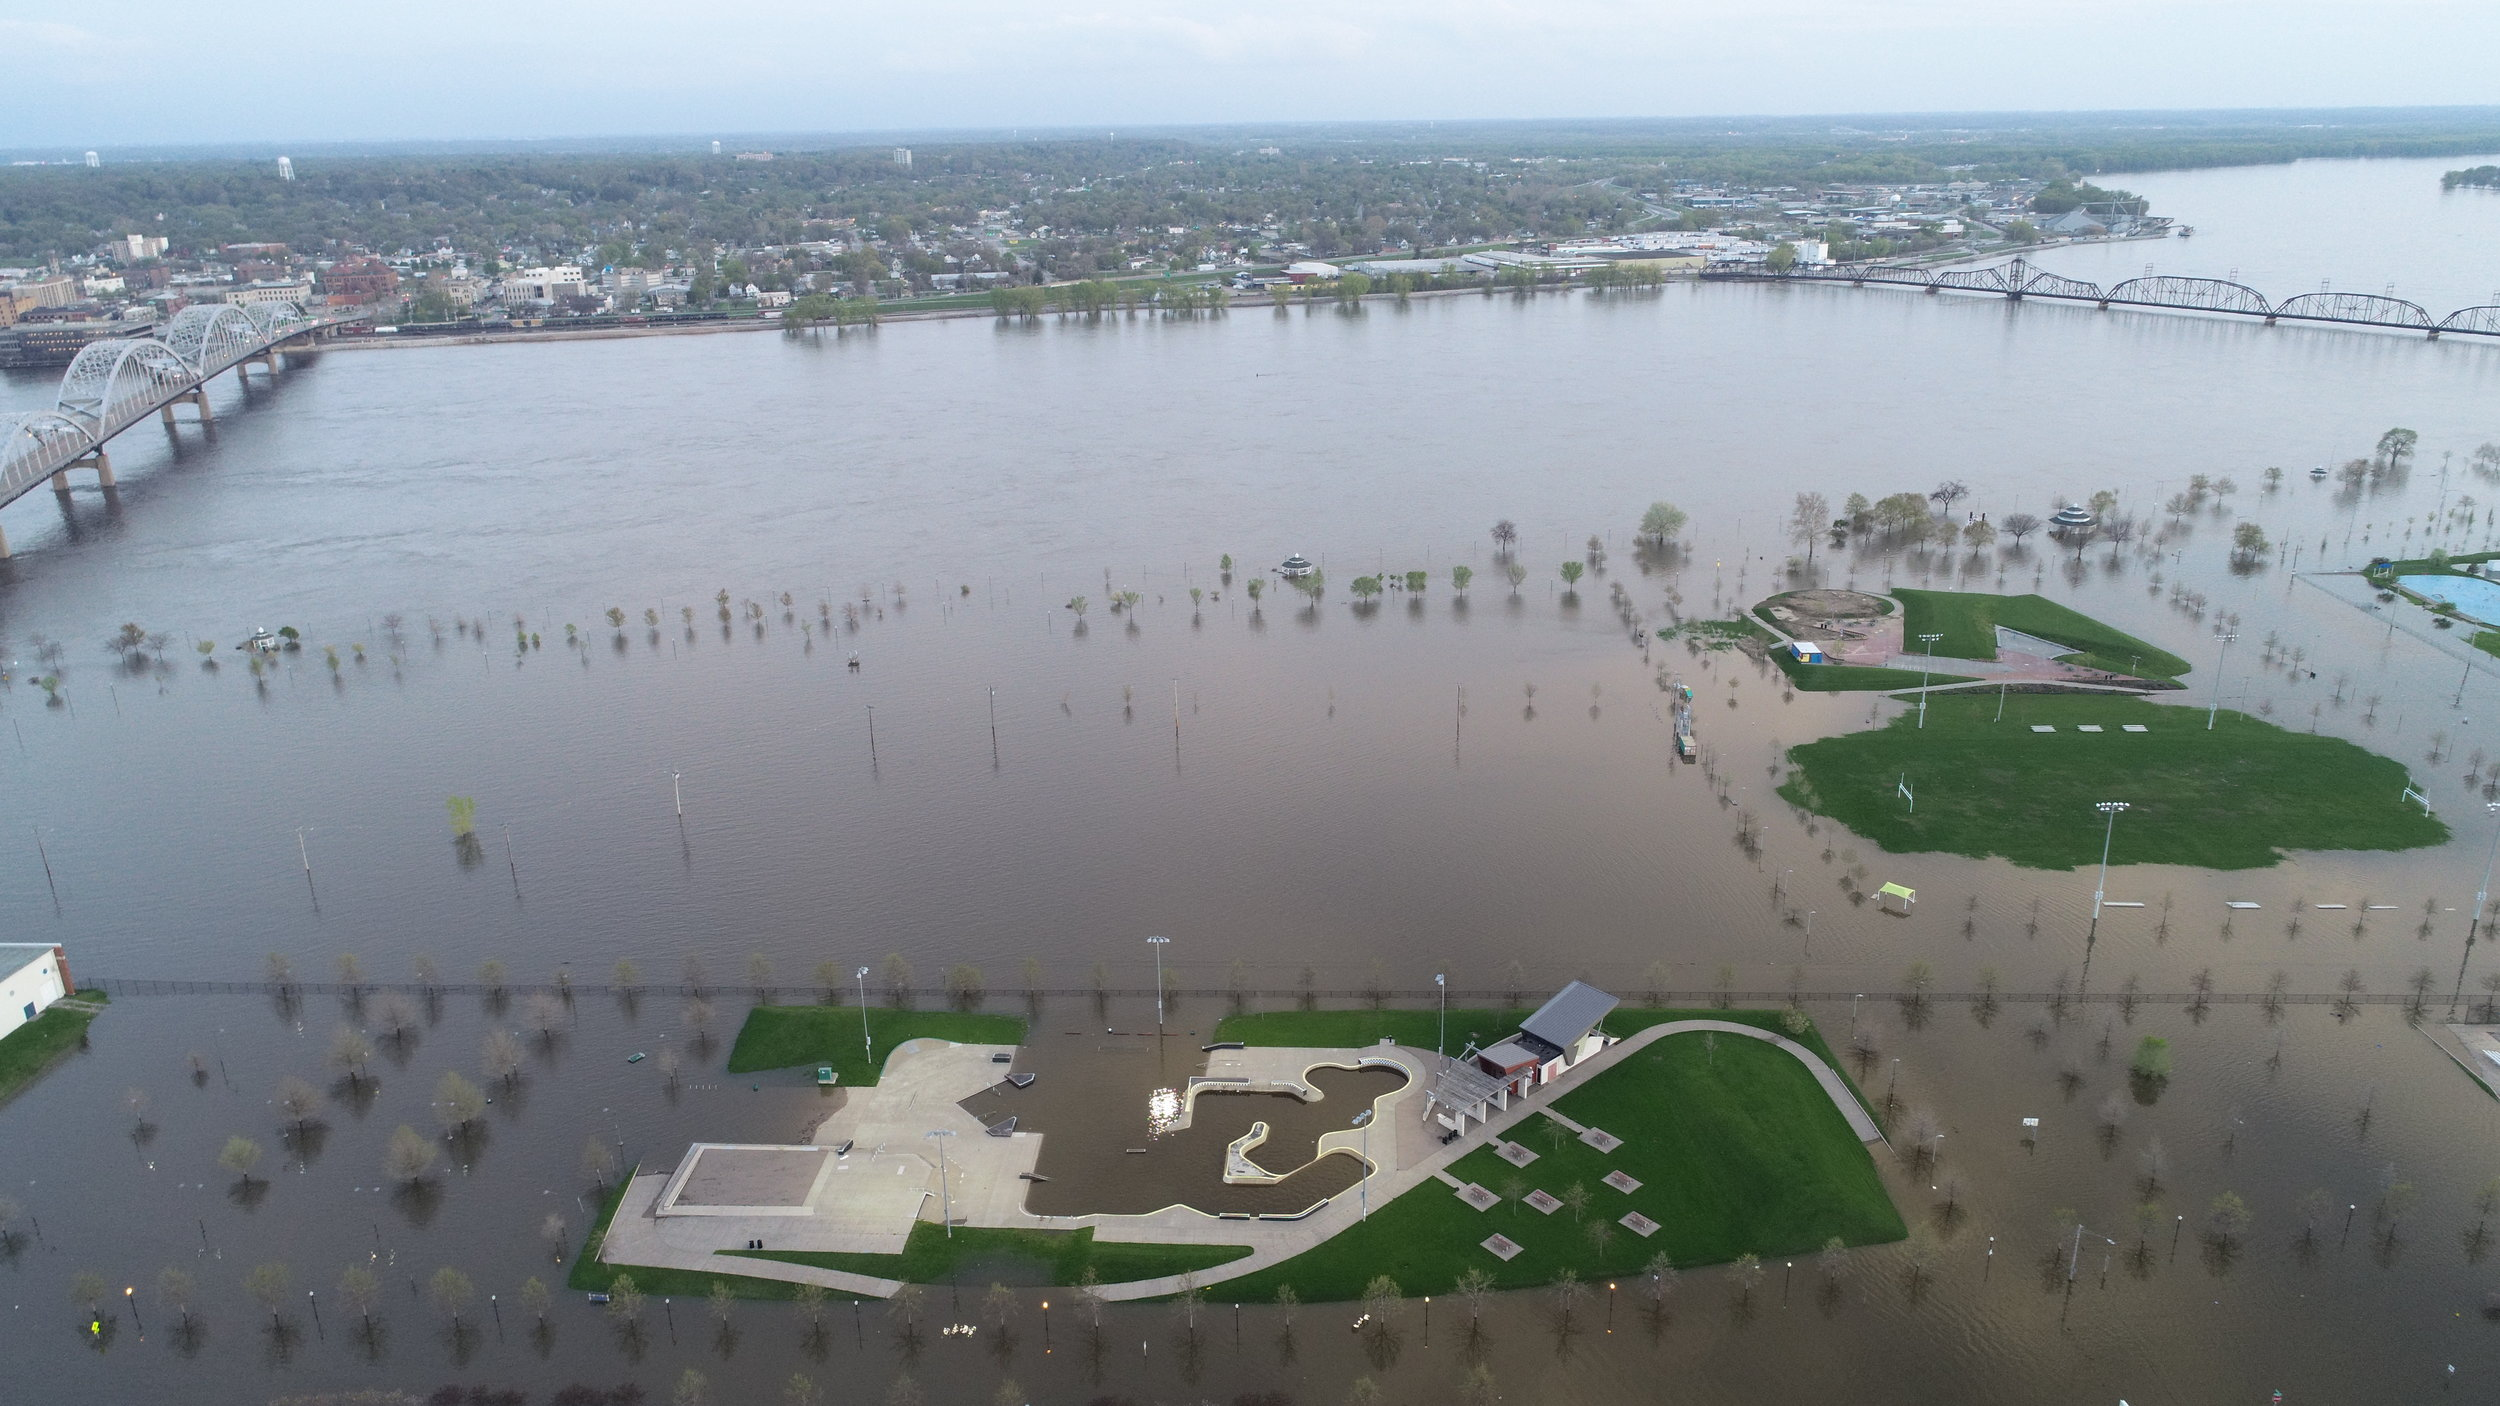 UpintheAir Iowa Downtown Davenport Flood 2019 May 0.JPG